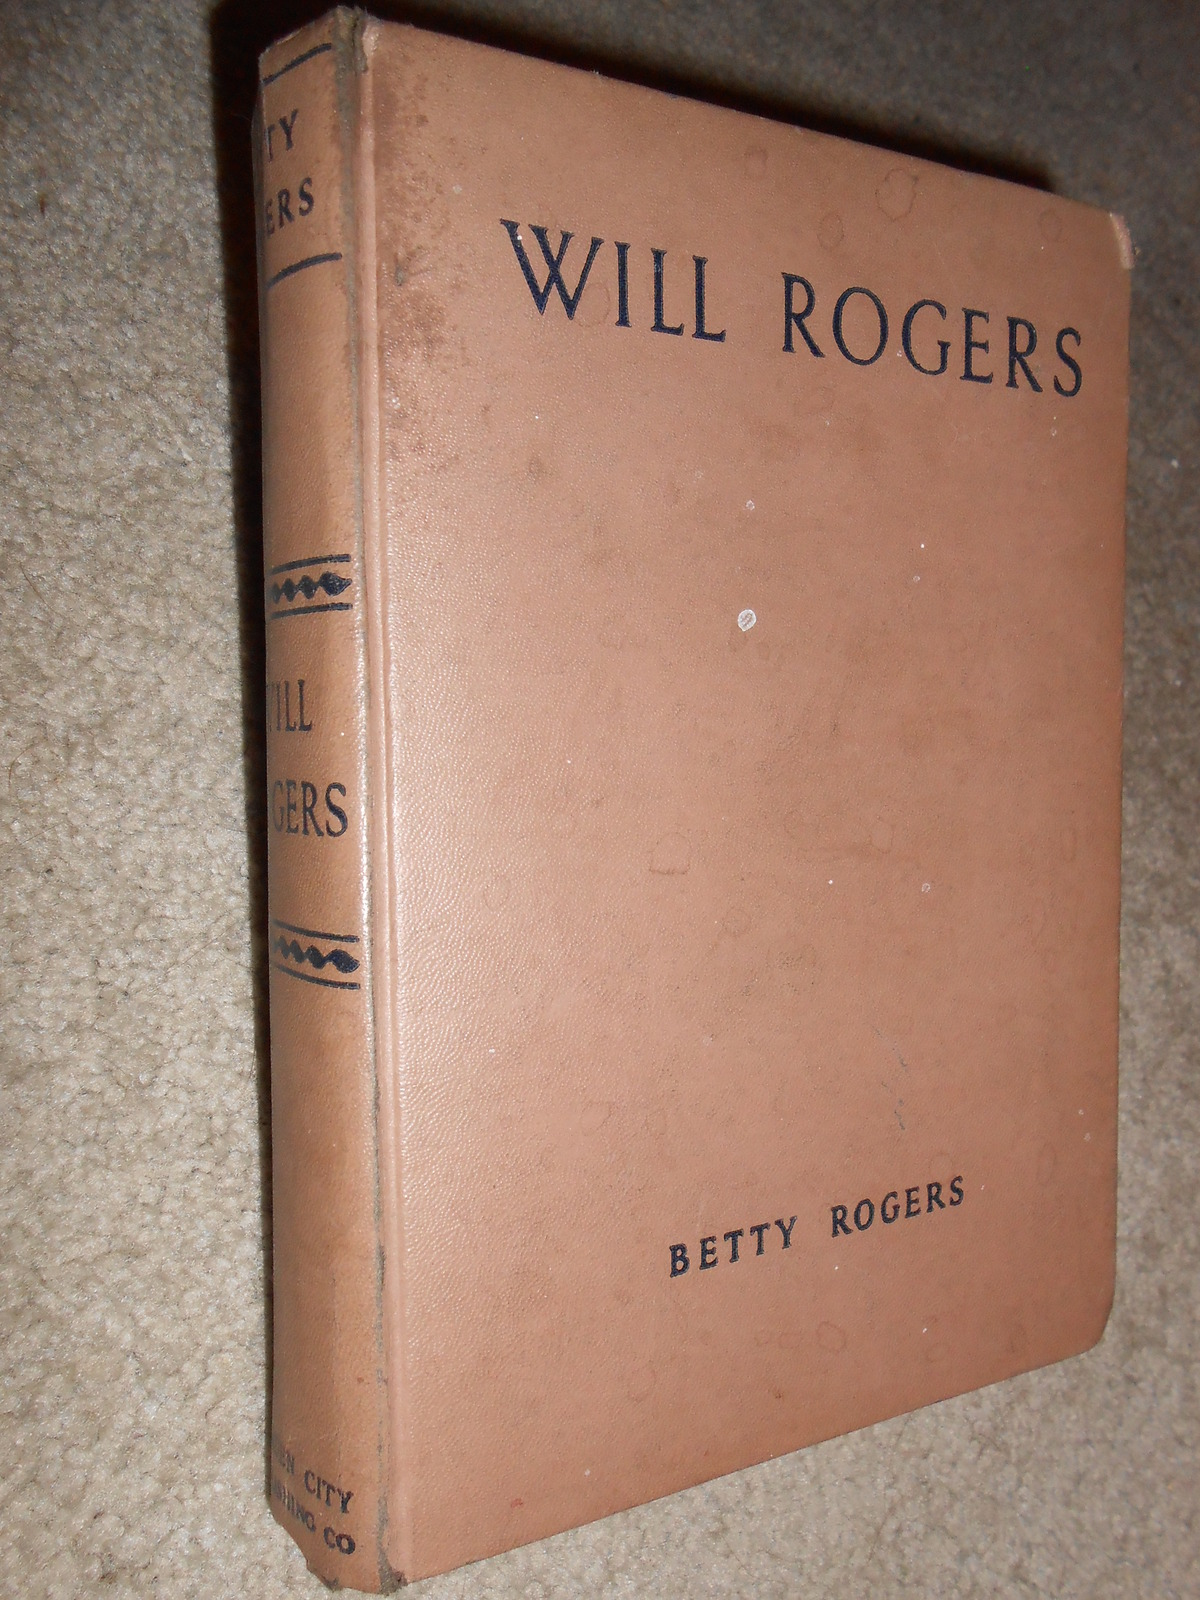 Will Rogers-The Story of His Life Told by His Wife/Betty Rogers